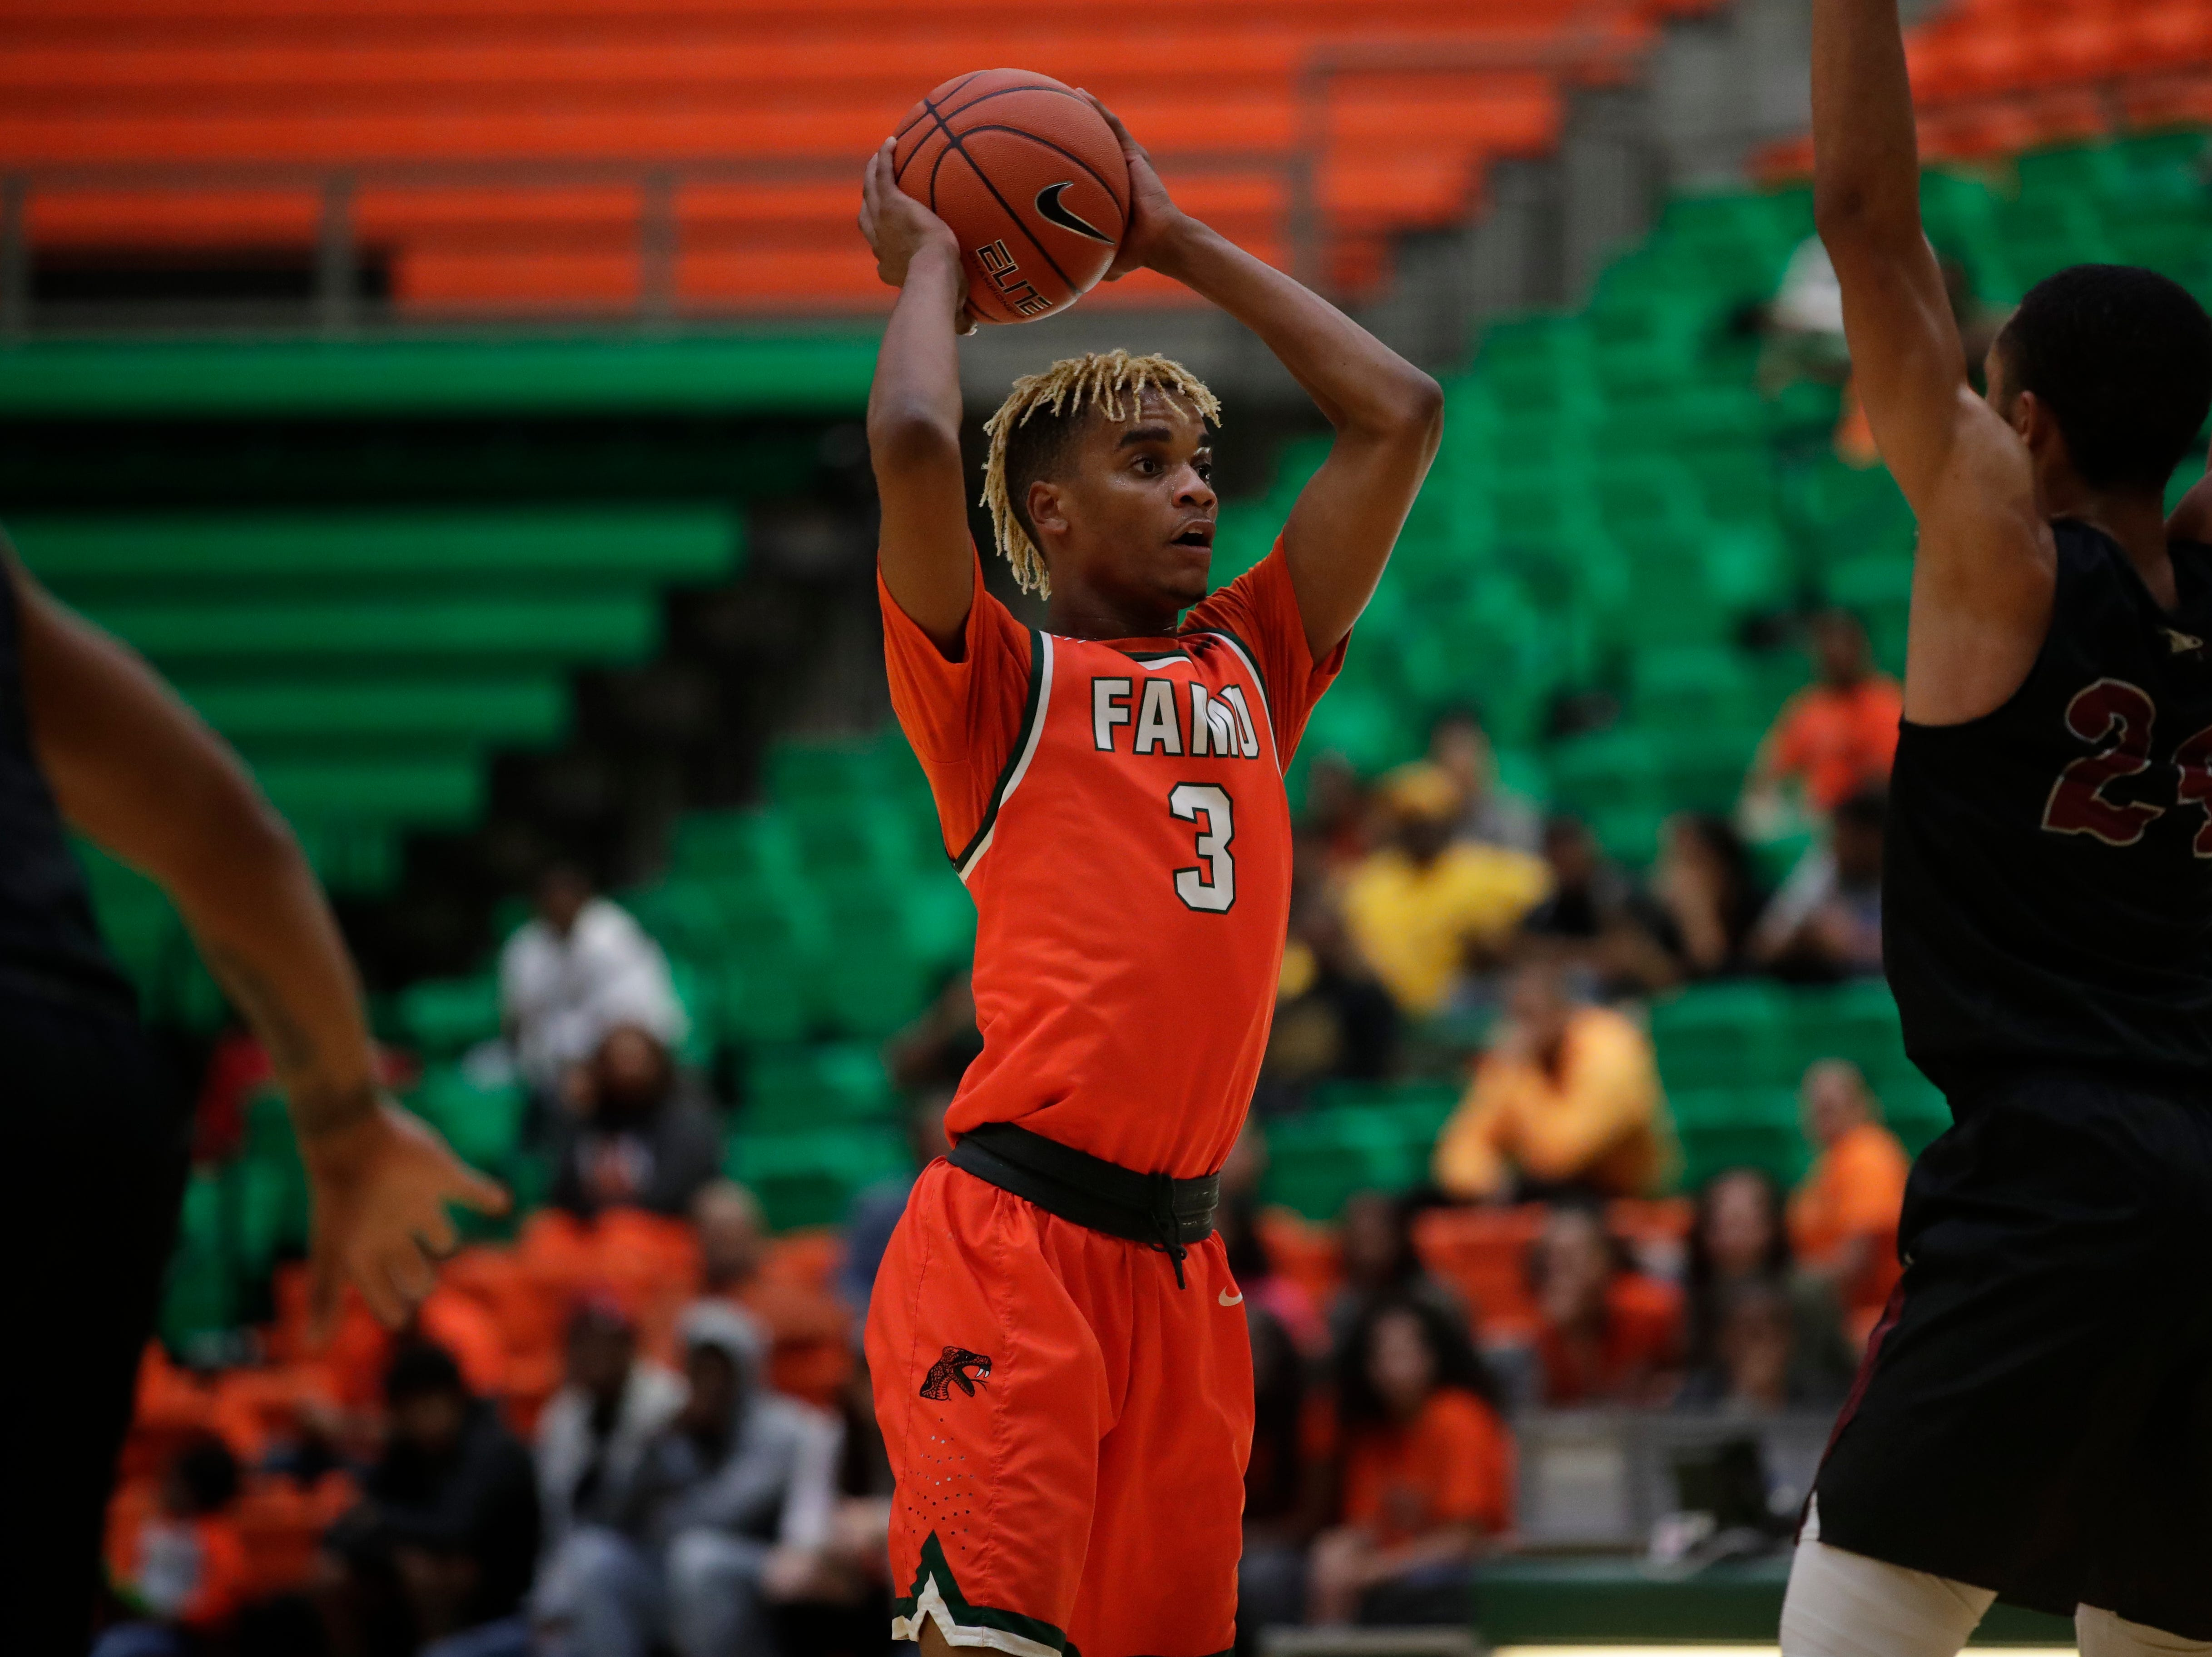 Florida A&M Rattlers guard MJ Randolph (3) looks for an open man during a game between FAMU and North Carolina Central at the Alfred Lawson Jr. Multipurpose Center Monday, Feb. 4, 2019.